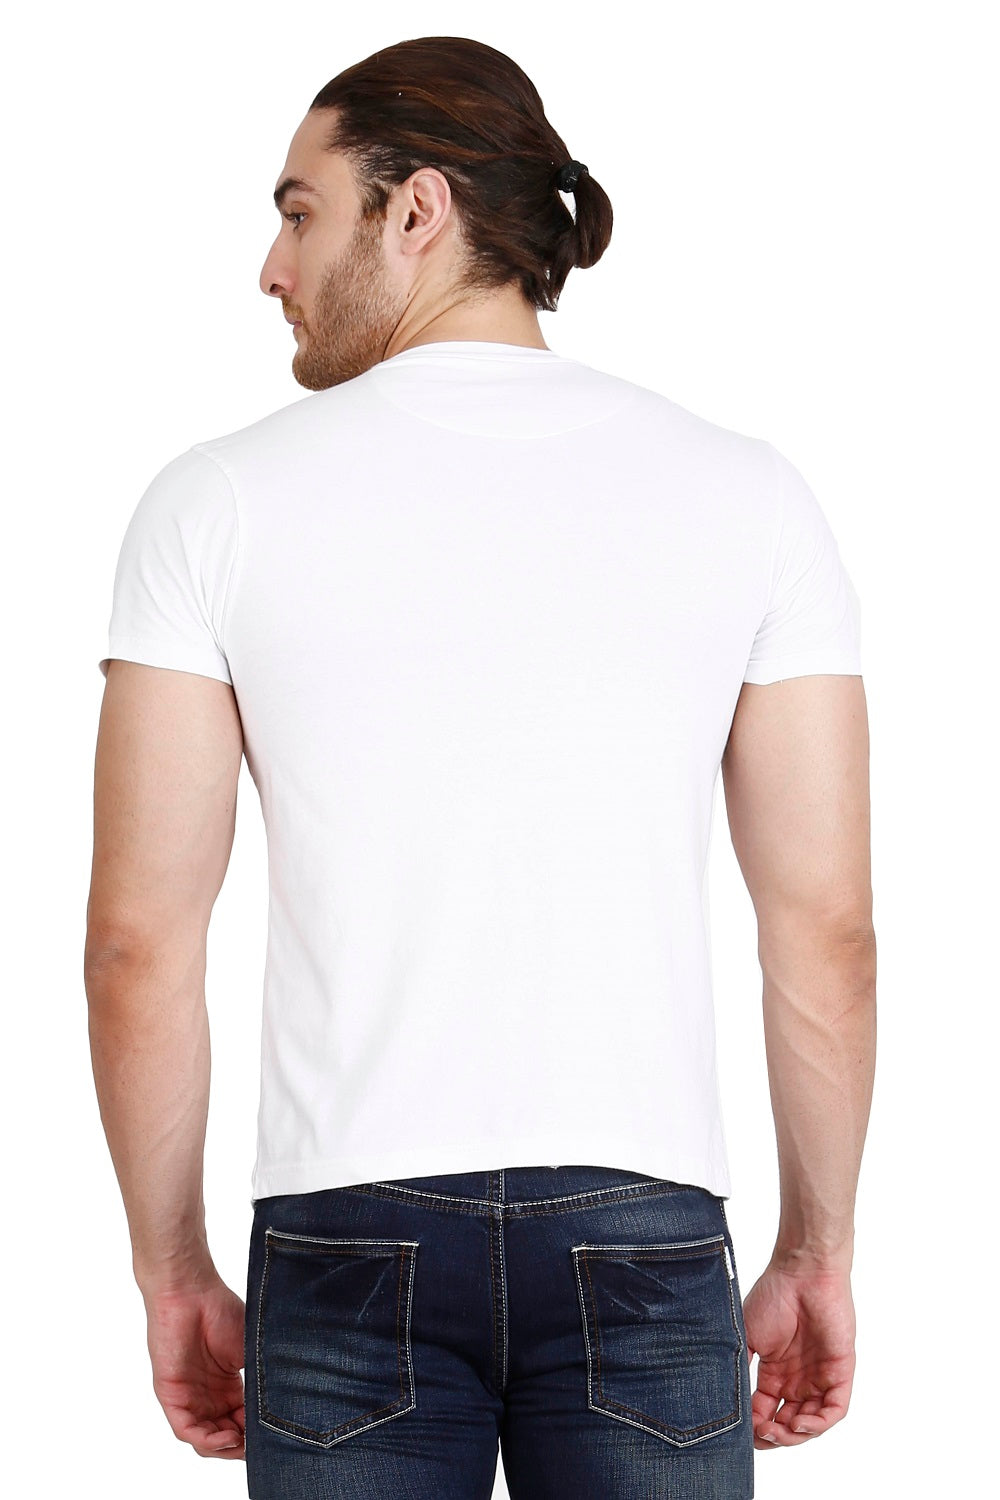 Hunt and Howe Men's White Laser Cut T-Shirt